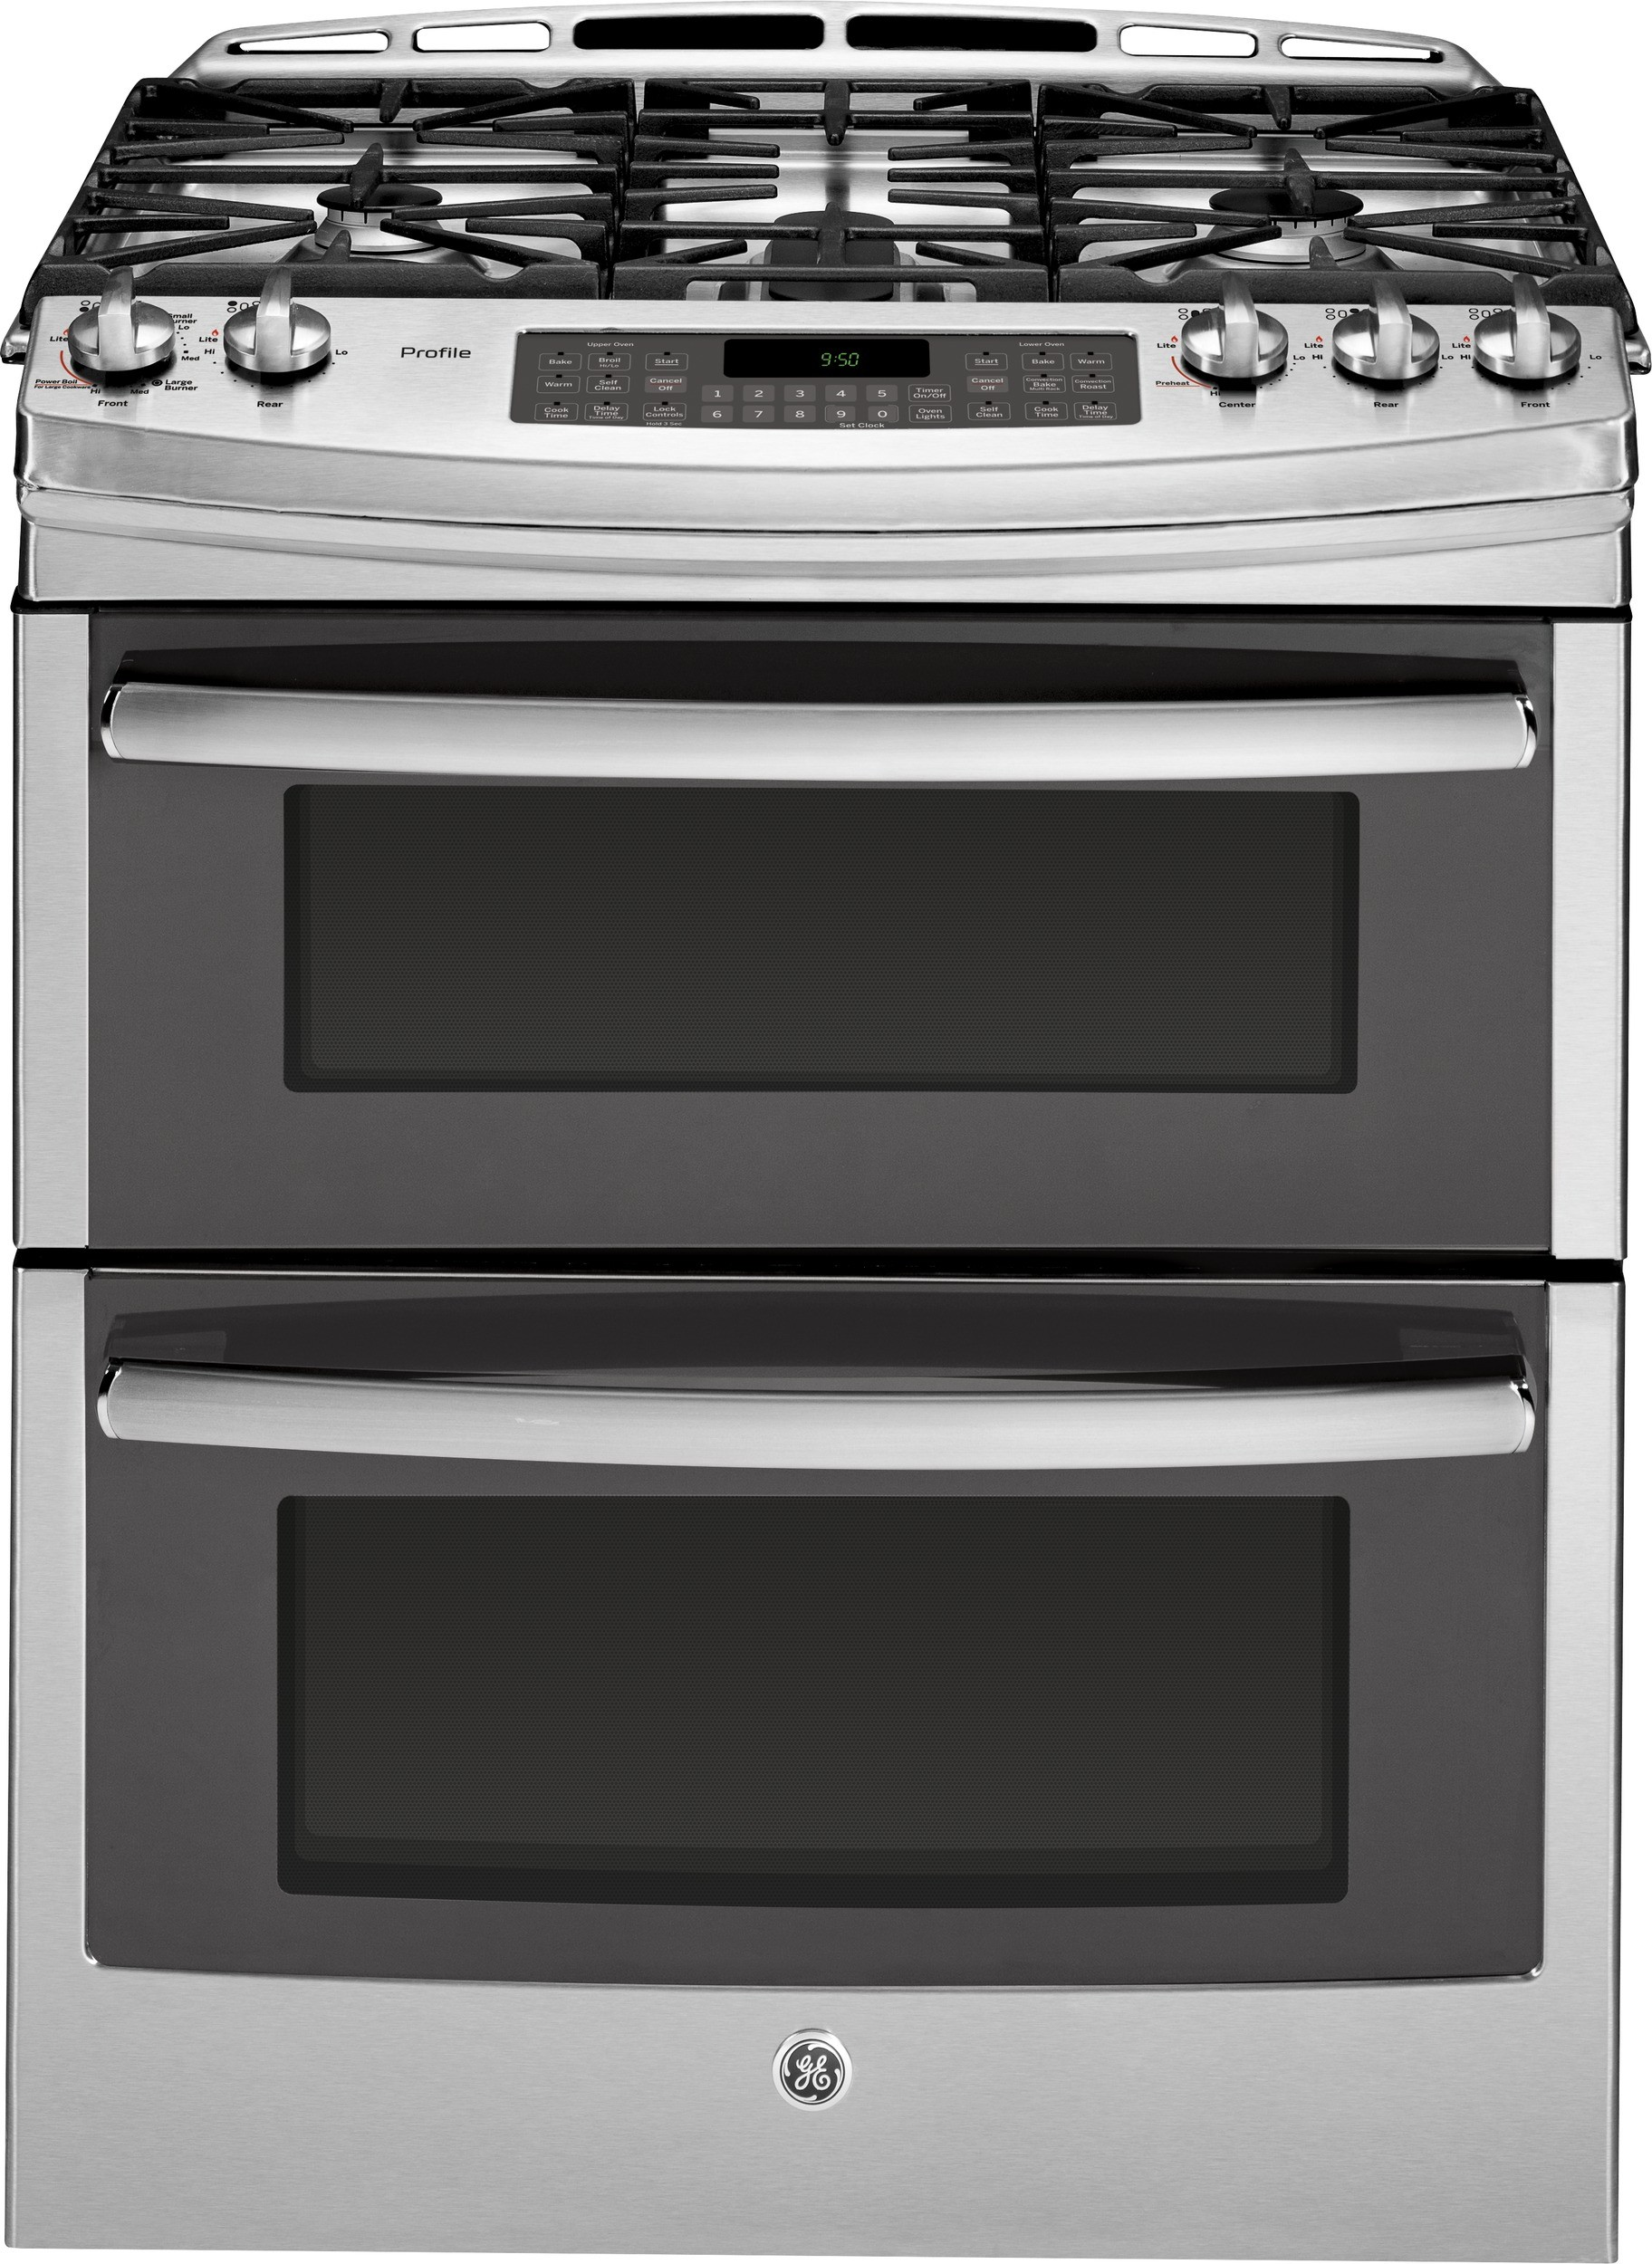 Ge Pgs950sefss 30 Inch Slide In Double Oven Gas Range With Convection Simmer Burner Reversible Grill Griddle Tri Ring 5 Sealed Burners